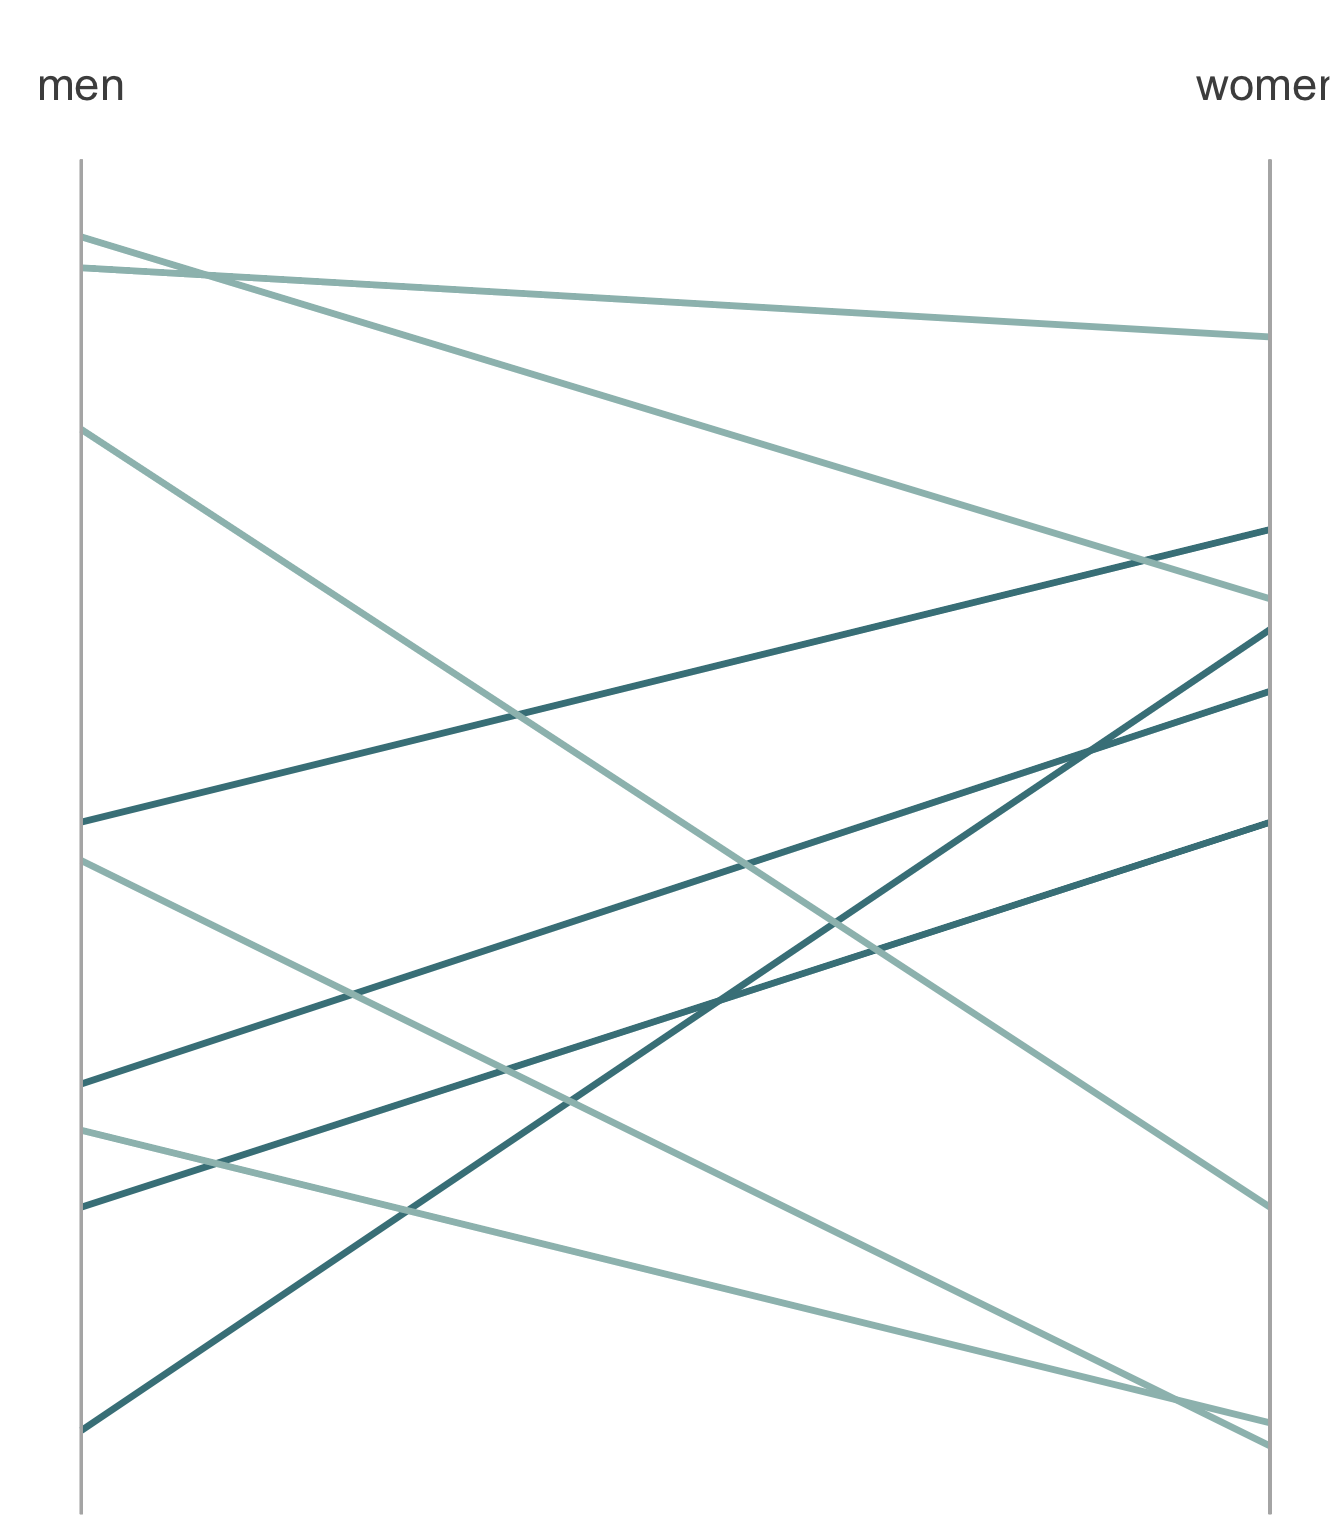 Getting fancy with ggplot2: code for alternatives to grouped